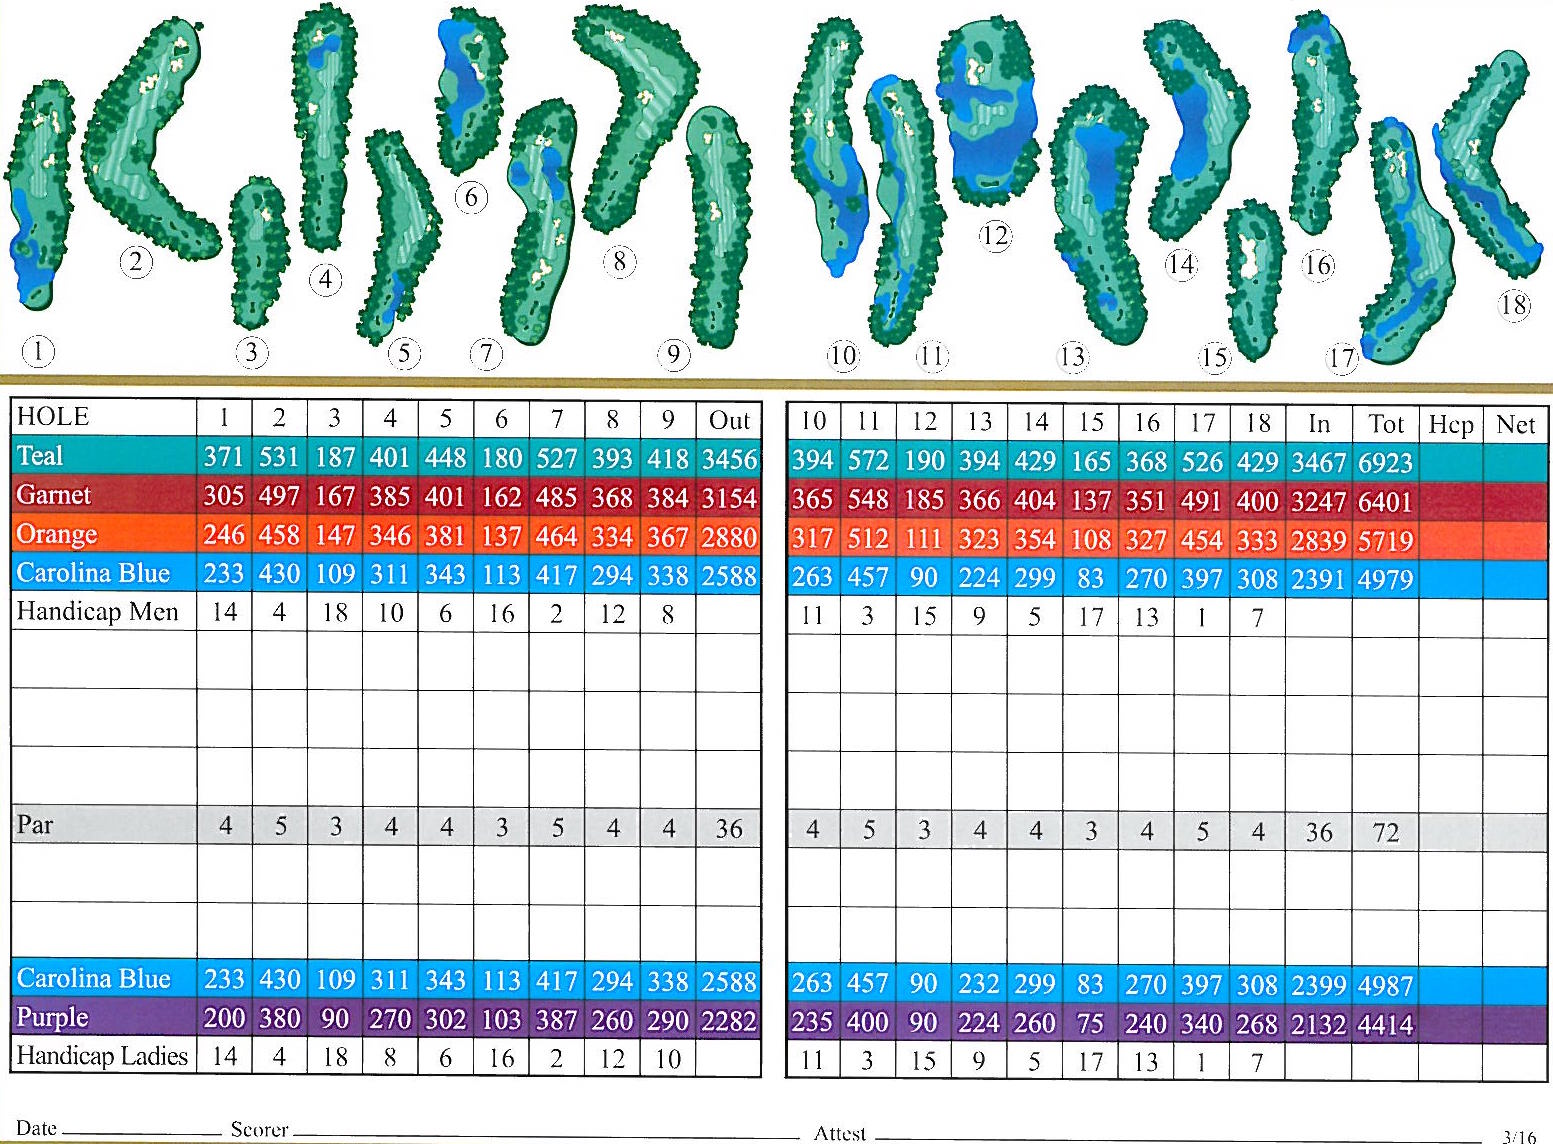 River Hills Scorecard - River Hills Golf Club on branson golf course map, shelby golf course map, south carolina golf course map, golf course cape cod map, minneapolis golf course map, pittsburgh golf course map, kauai golf courses map, austin golf course map, williamsburg golf course map, seneca golf course map, omaha golf course map, portland golf course map, biloxi golf course map, orlando golf course map, boston golf course map, north myrtle golf map, colorado springs golf course map, lake city golf course map, san bernardino golf course map, callaway gardens golf course map,